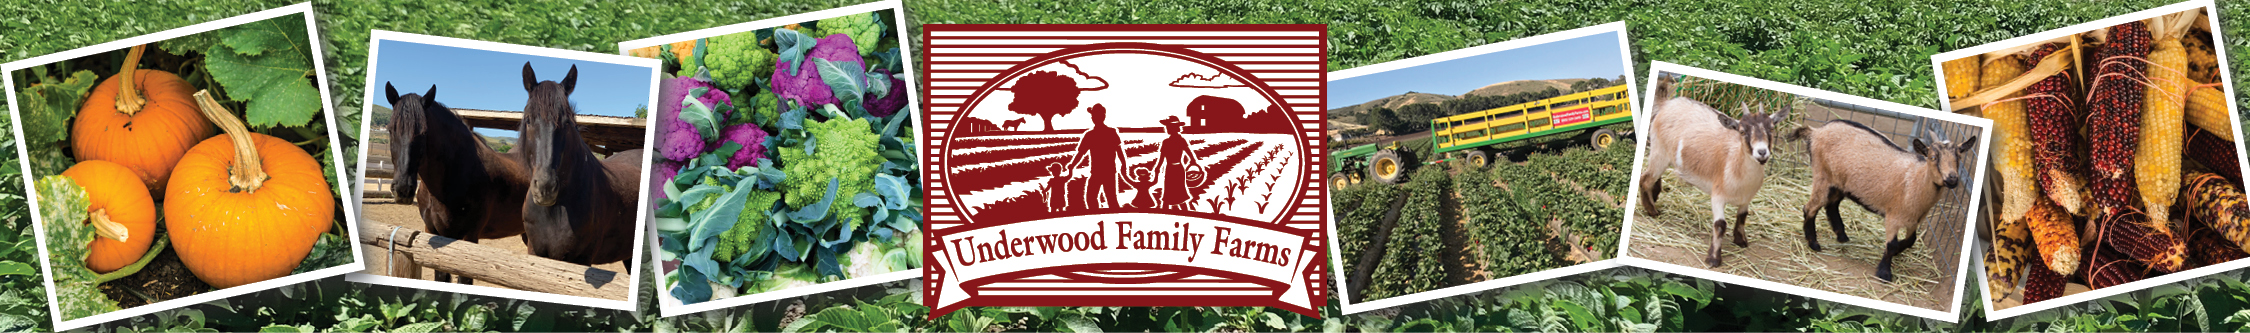 Underwood Family Farms - Thanksgiving Shopping